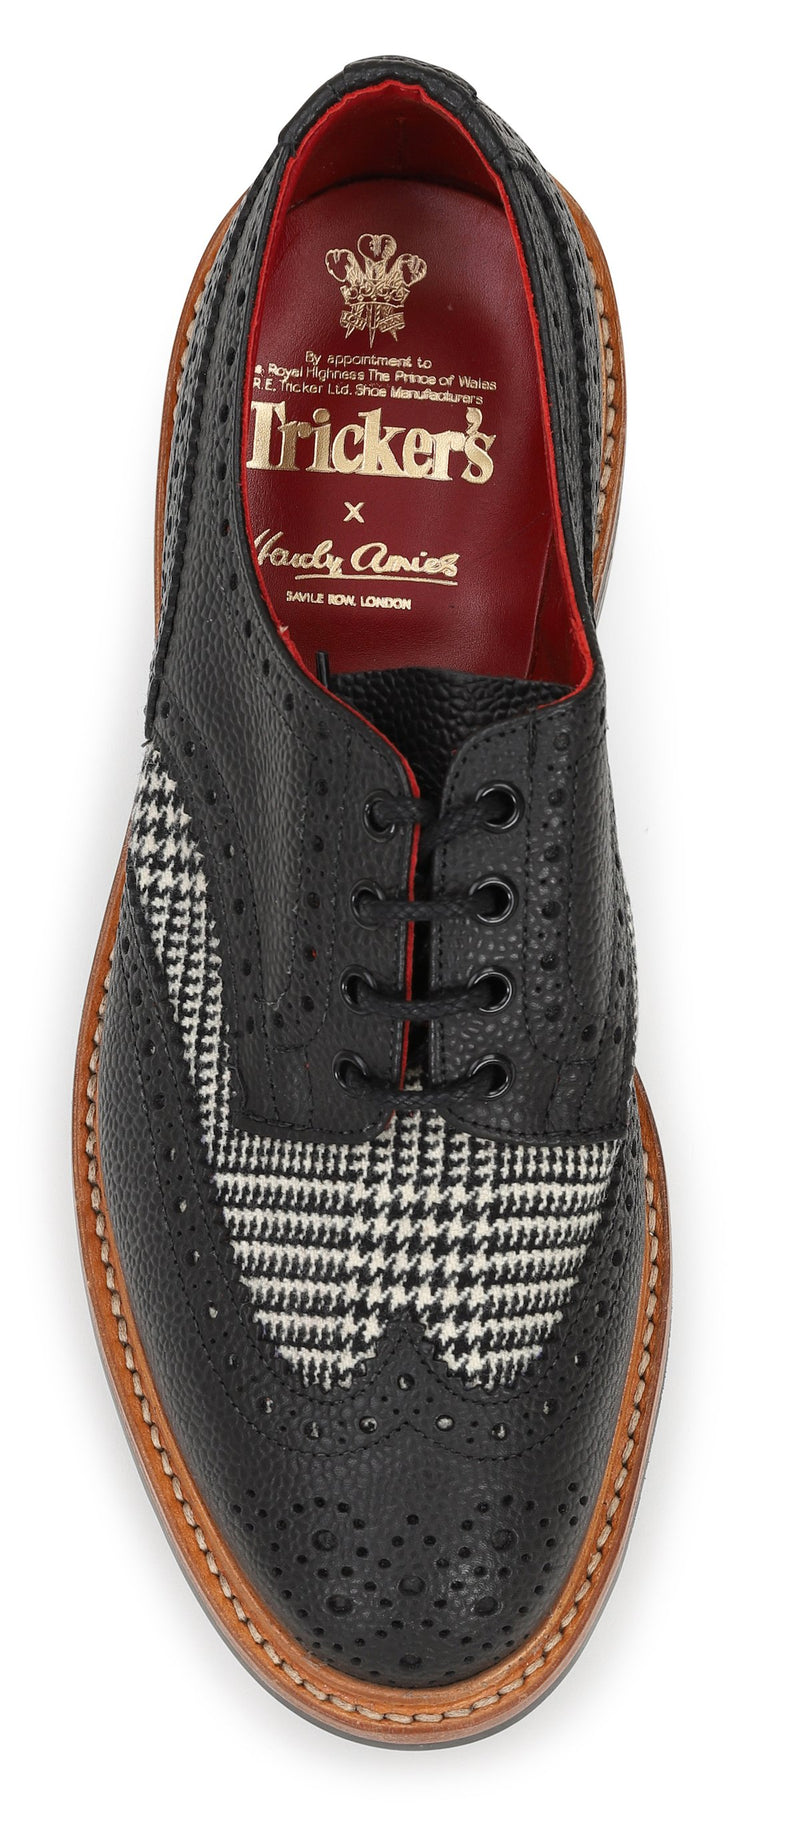 Hardy Amies X Trickers Limited Edition Shoes | Malford of London Savile Row and Luxury Formal Wear Sale Outlet